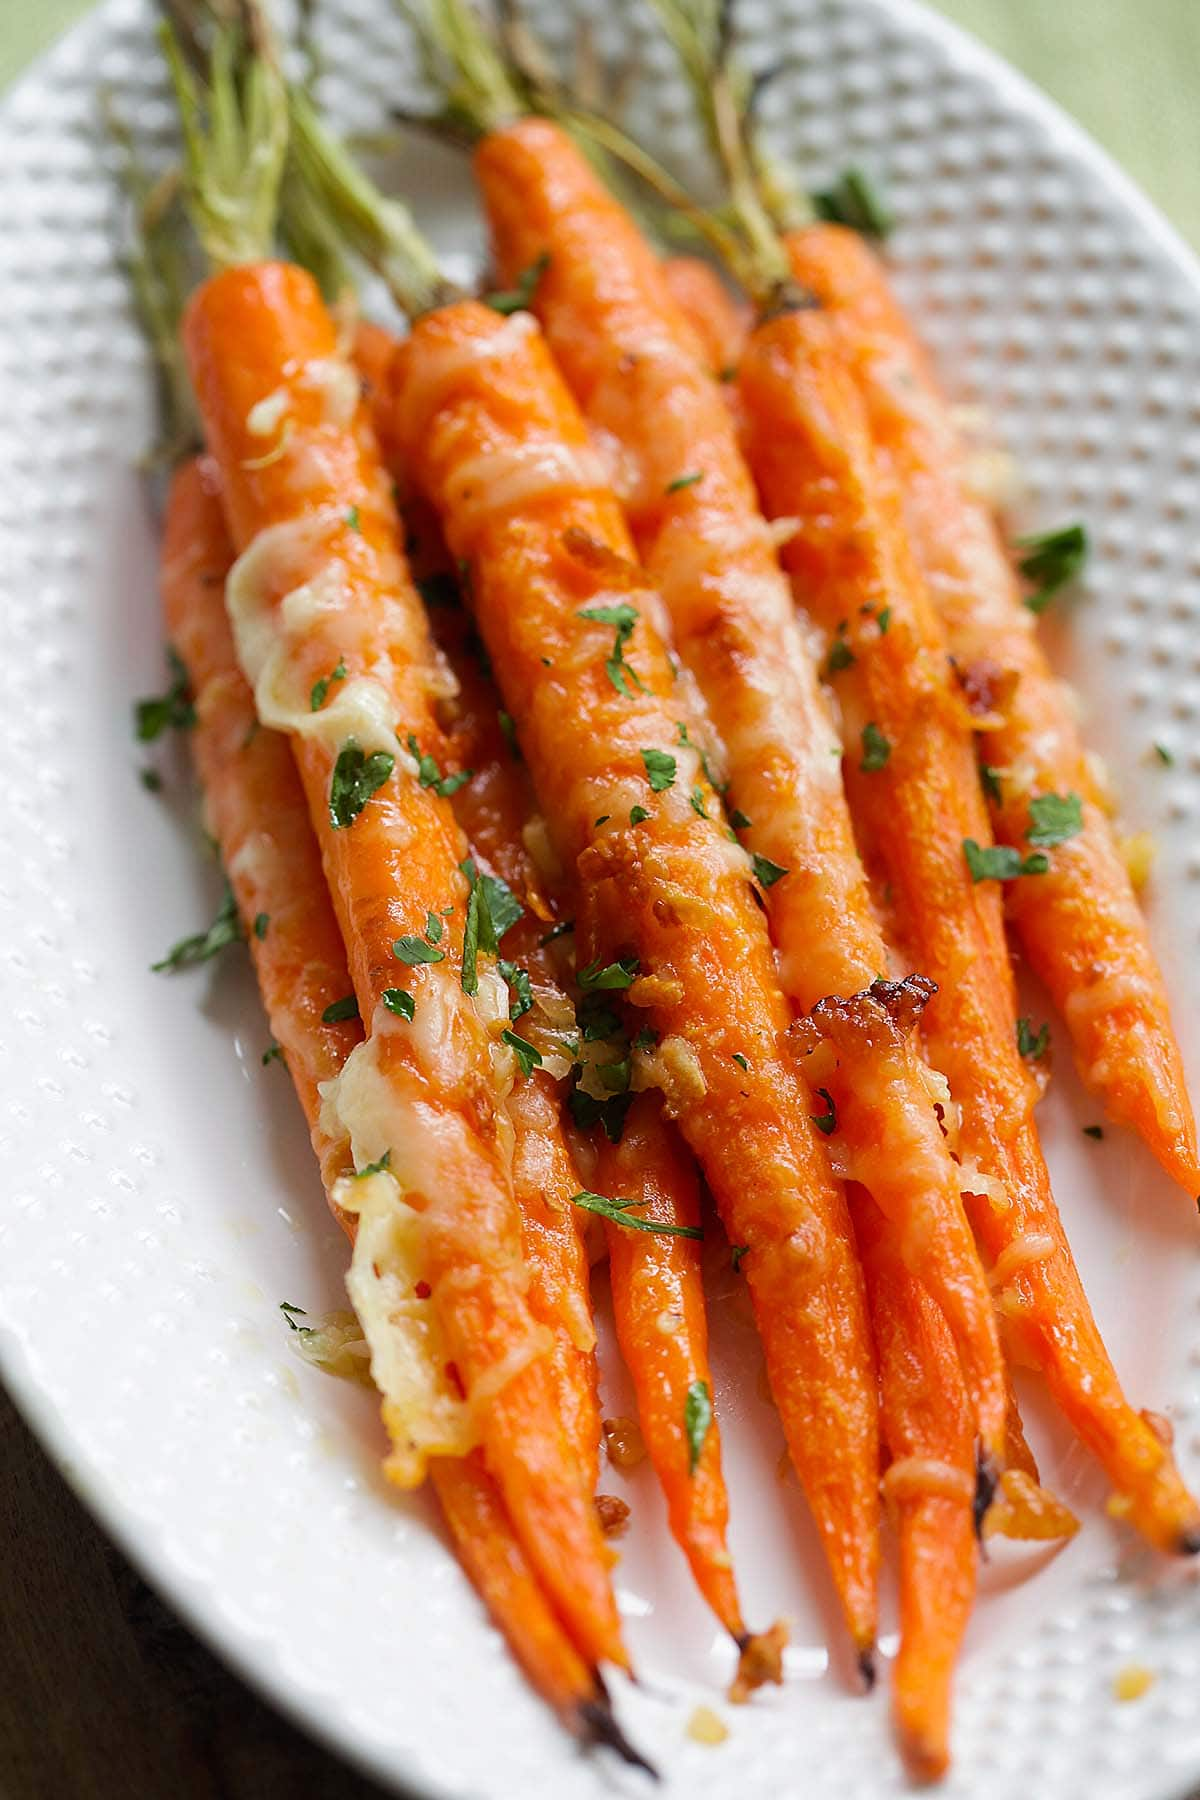 One of the best roasted carrot recipes made with carrot tops, garlic, butter and Parmesan cheese on a plate.